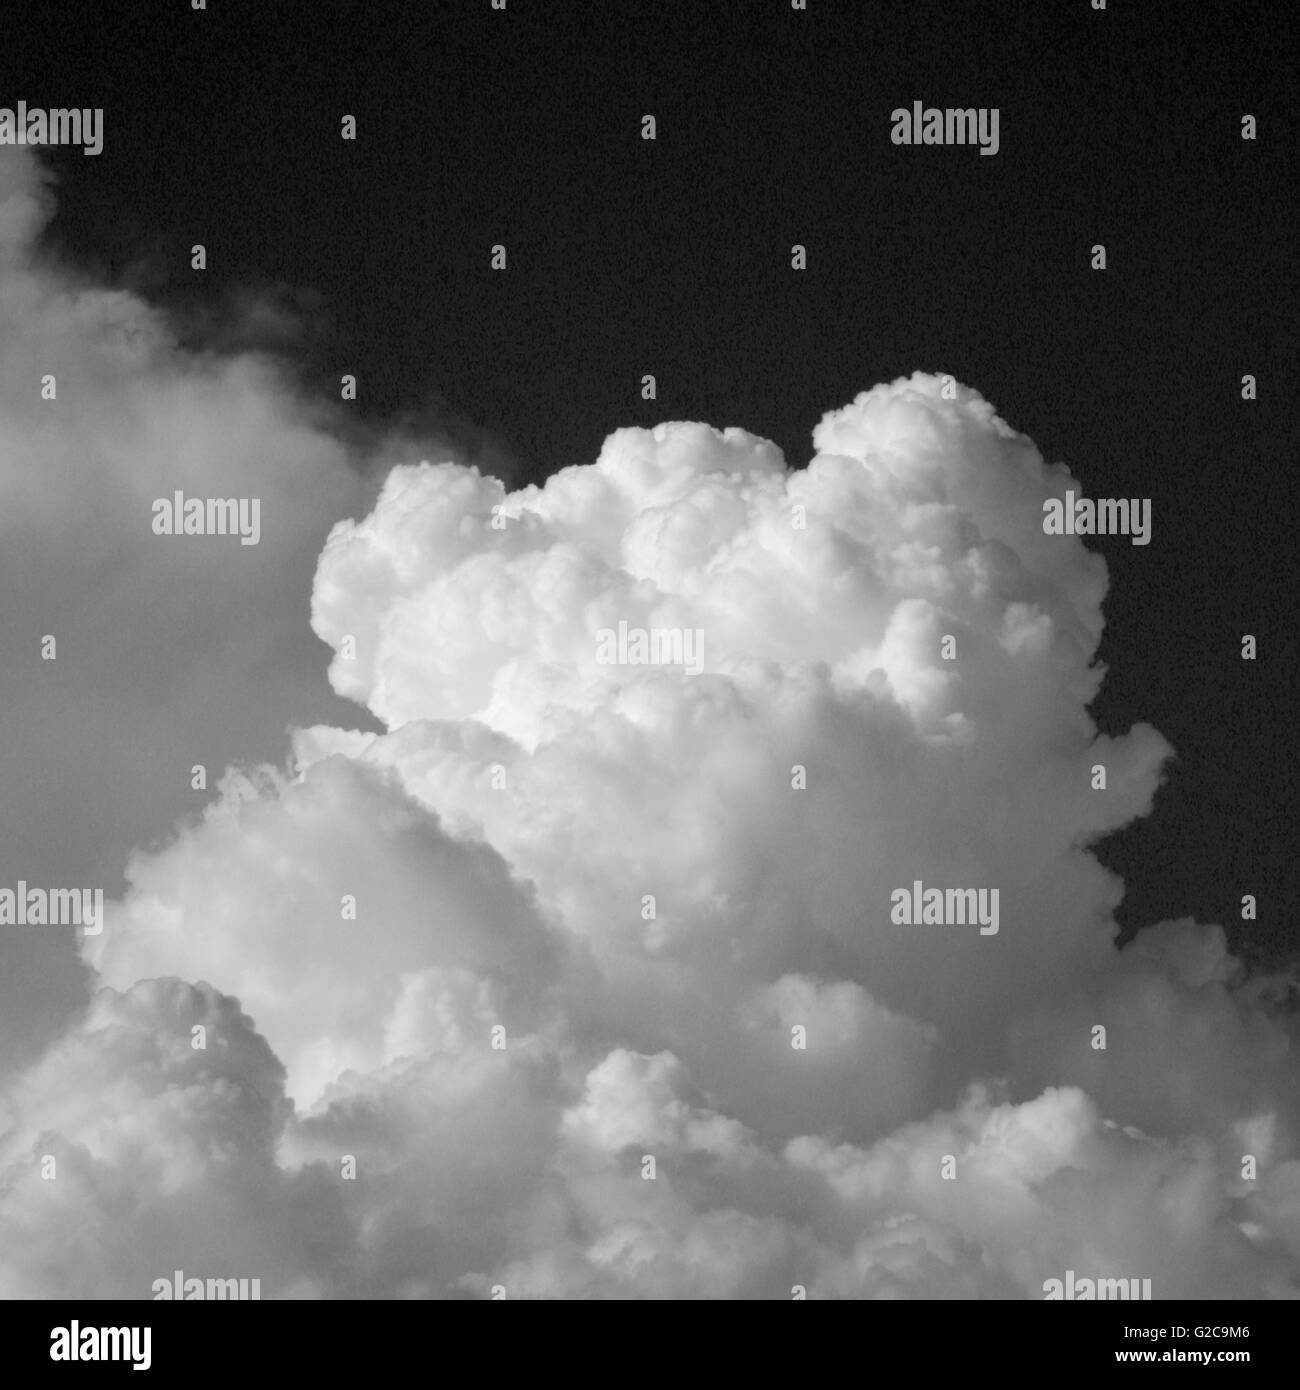 Cloud in the sky (Daylight) - Stock Image